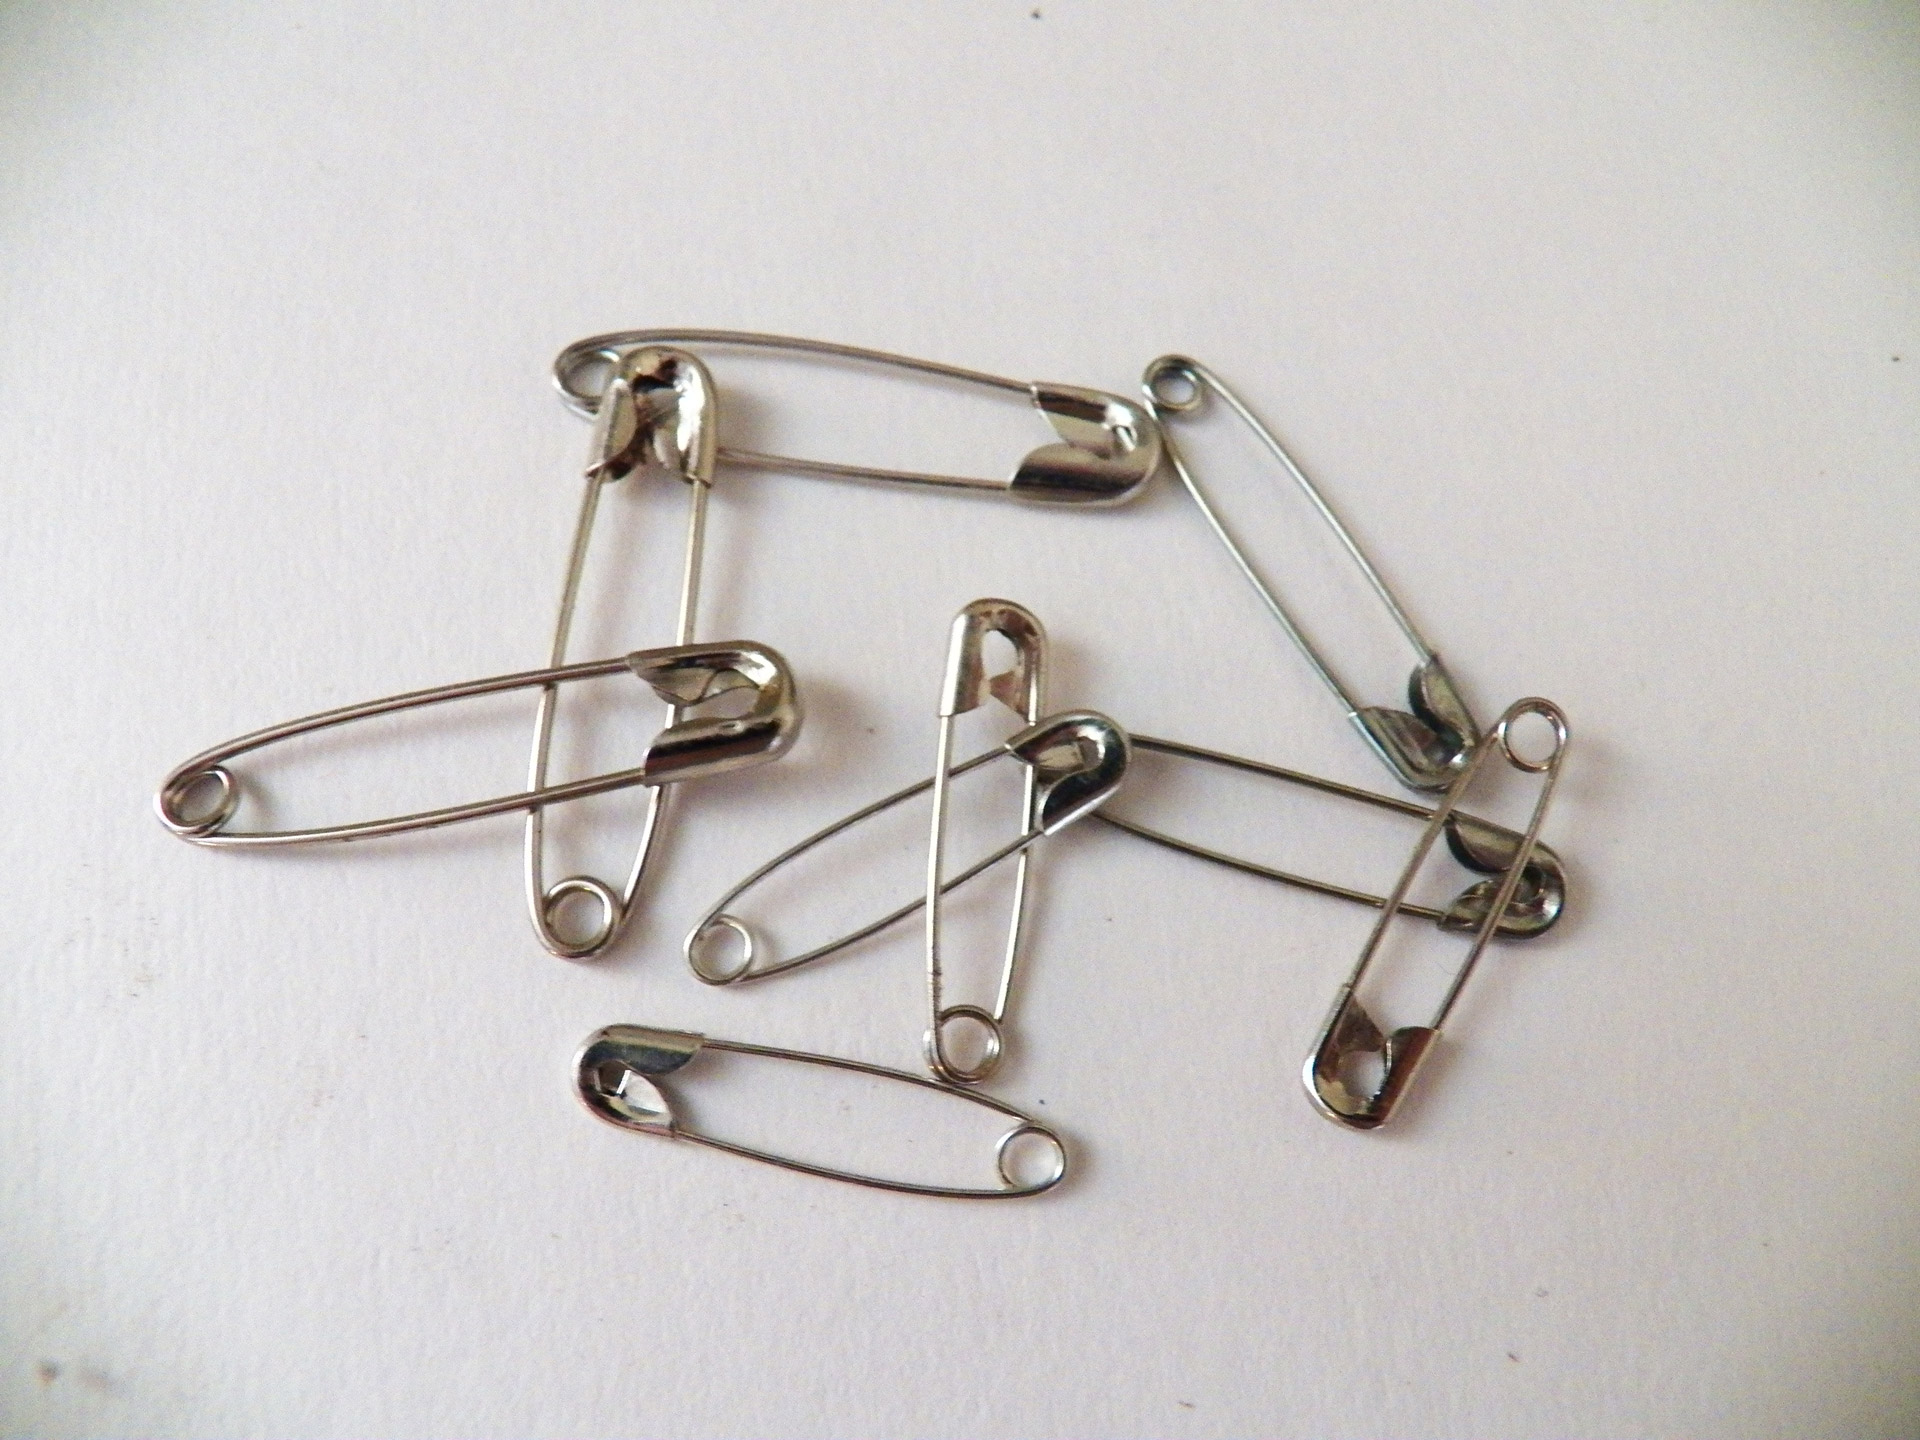 Download free photo of Safety pin,safety pins,pins,office supplies ...